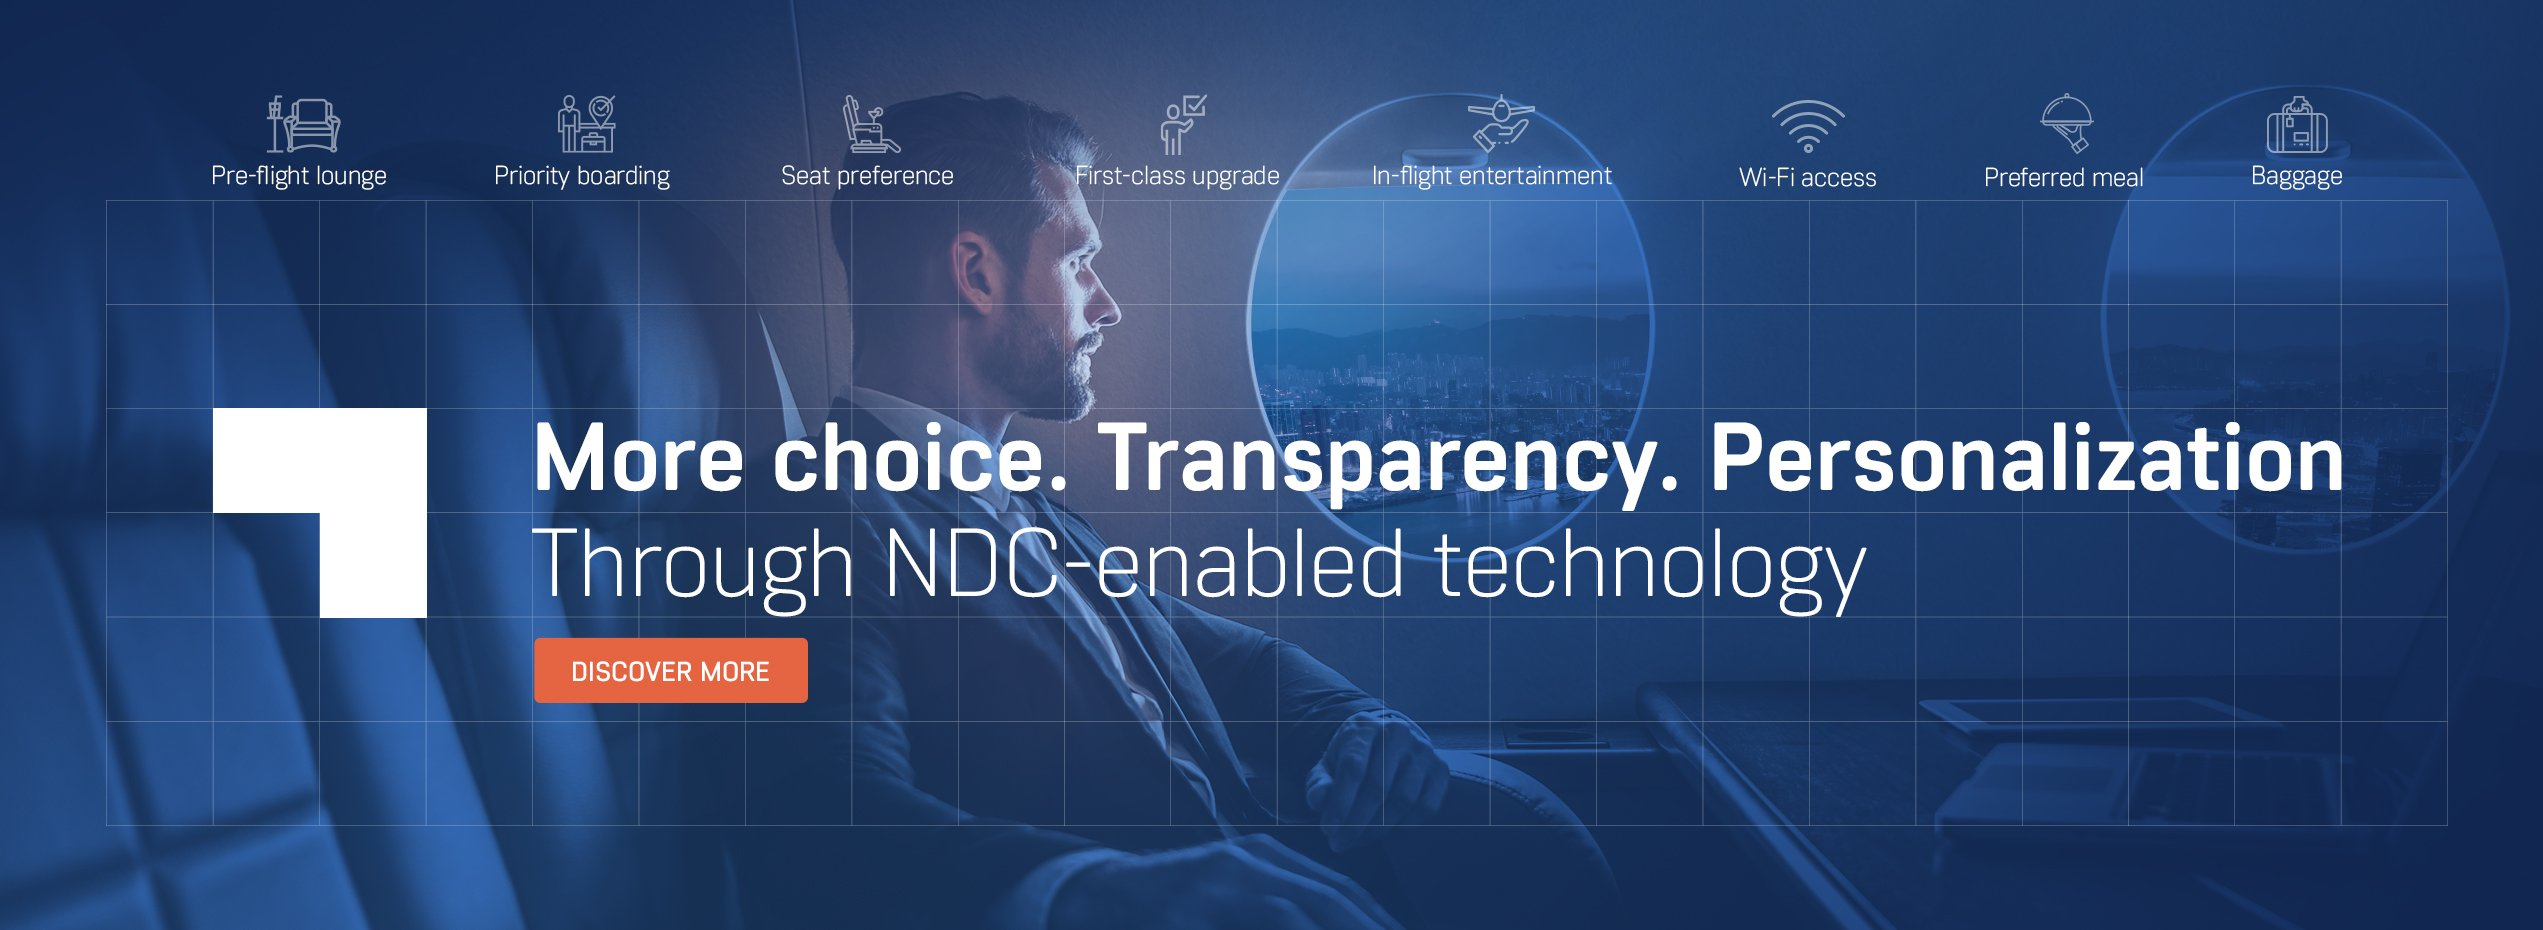 NDC-enabled technology_banner.jpg